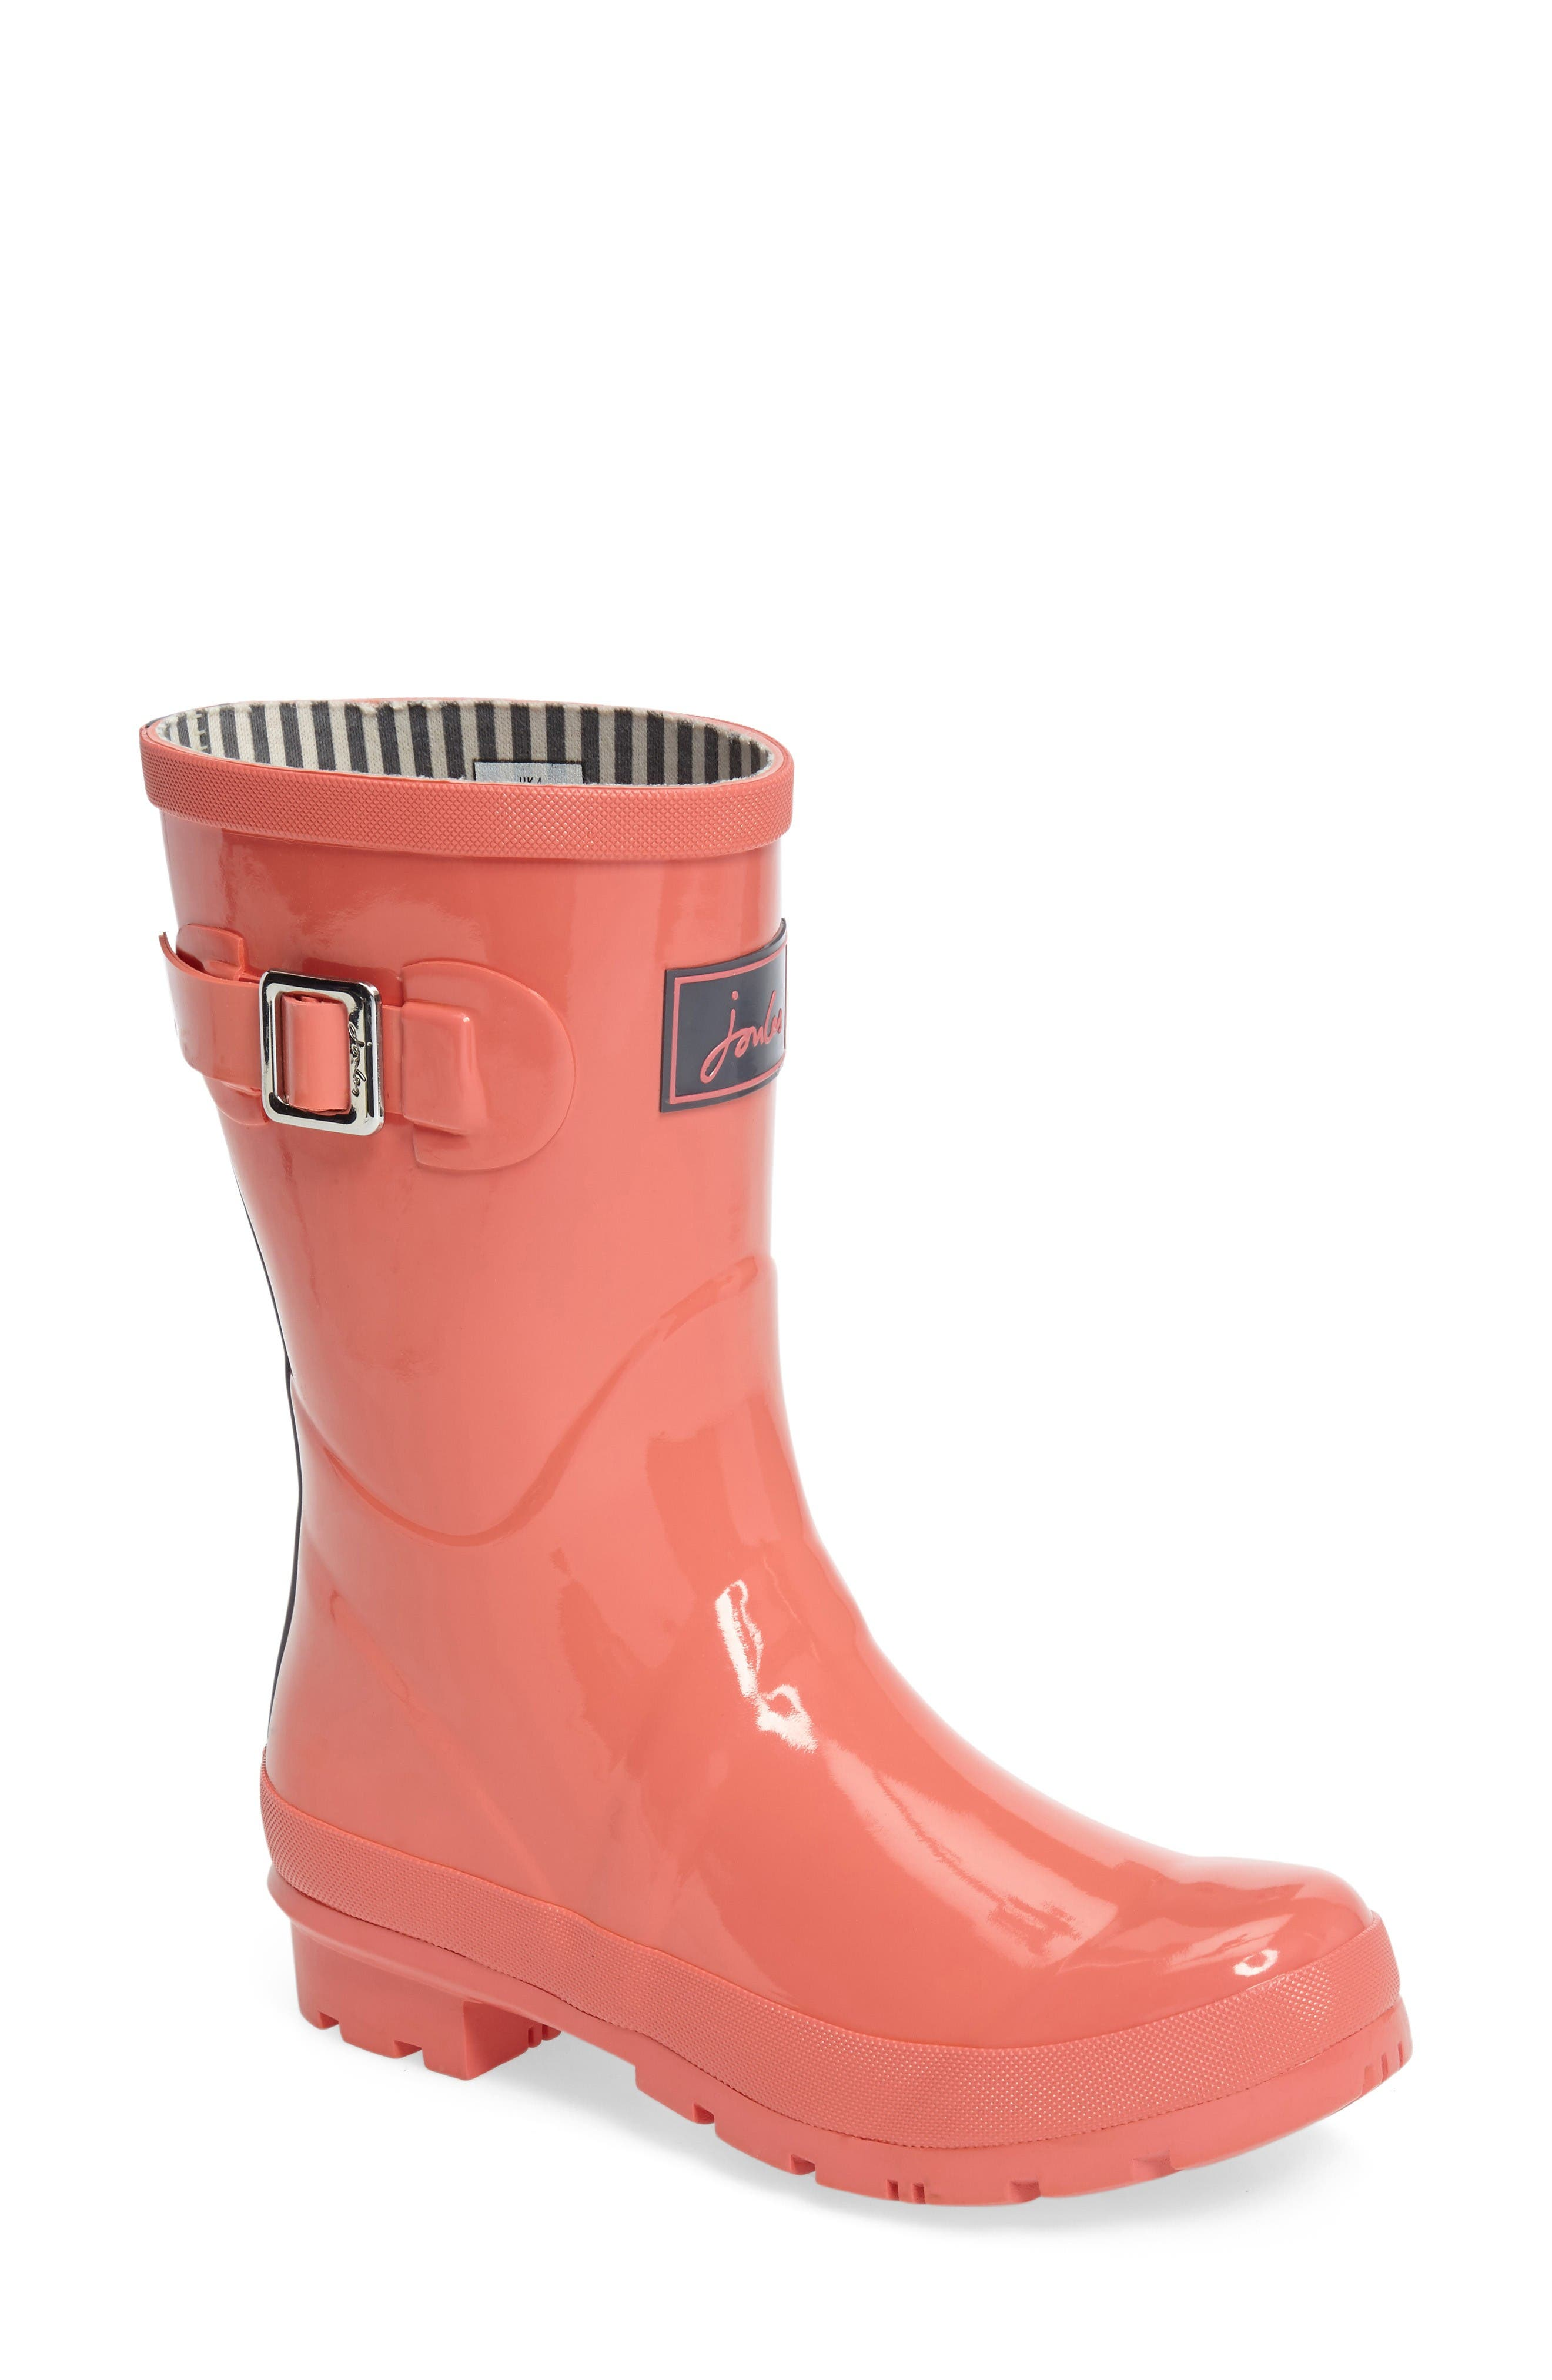 JOULES 'Kelly Welly' Rain Boot